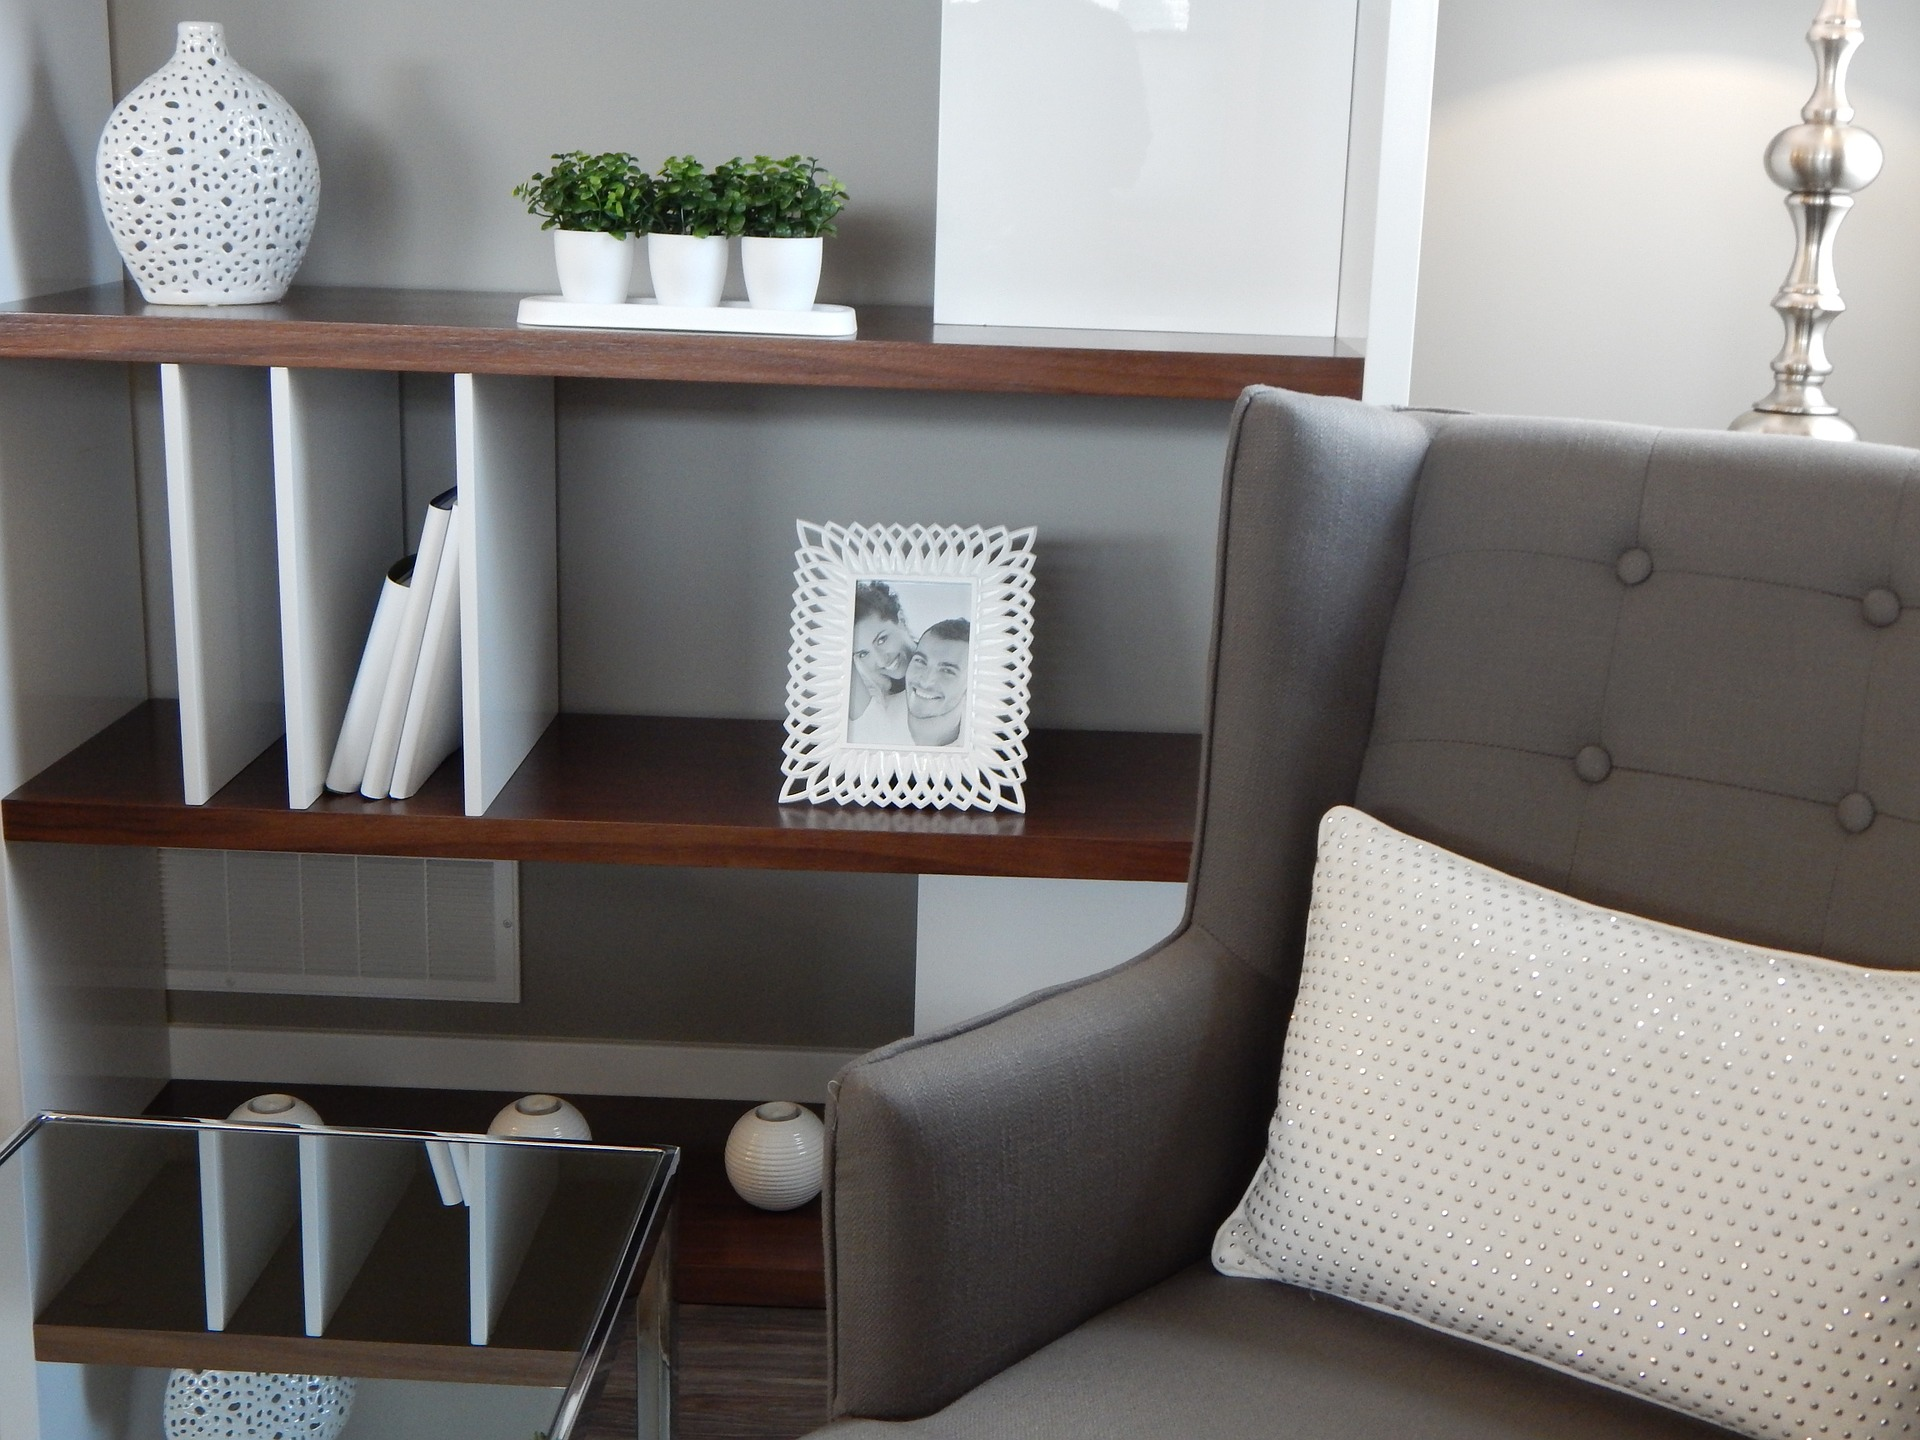 Use home storage options to declutter and make spaces look bigger